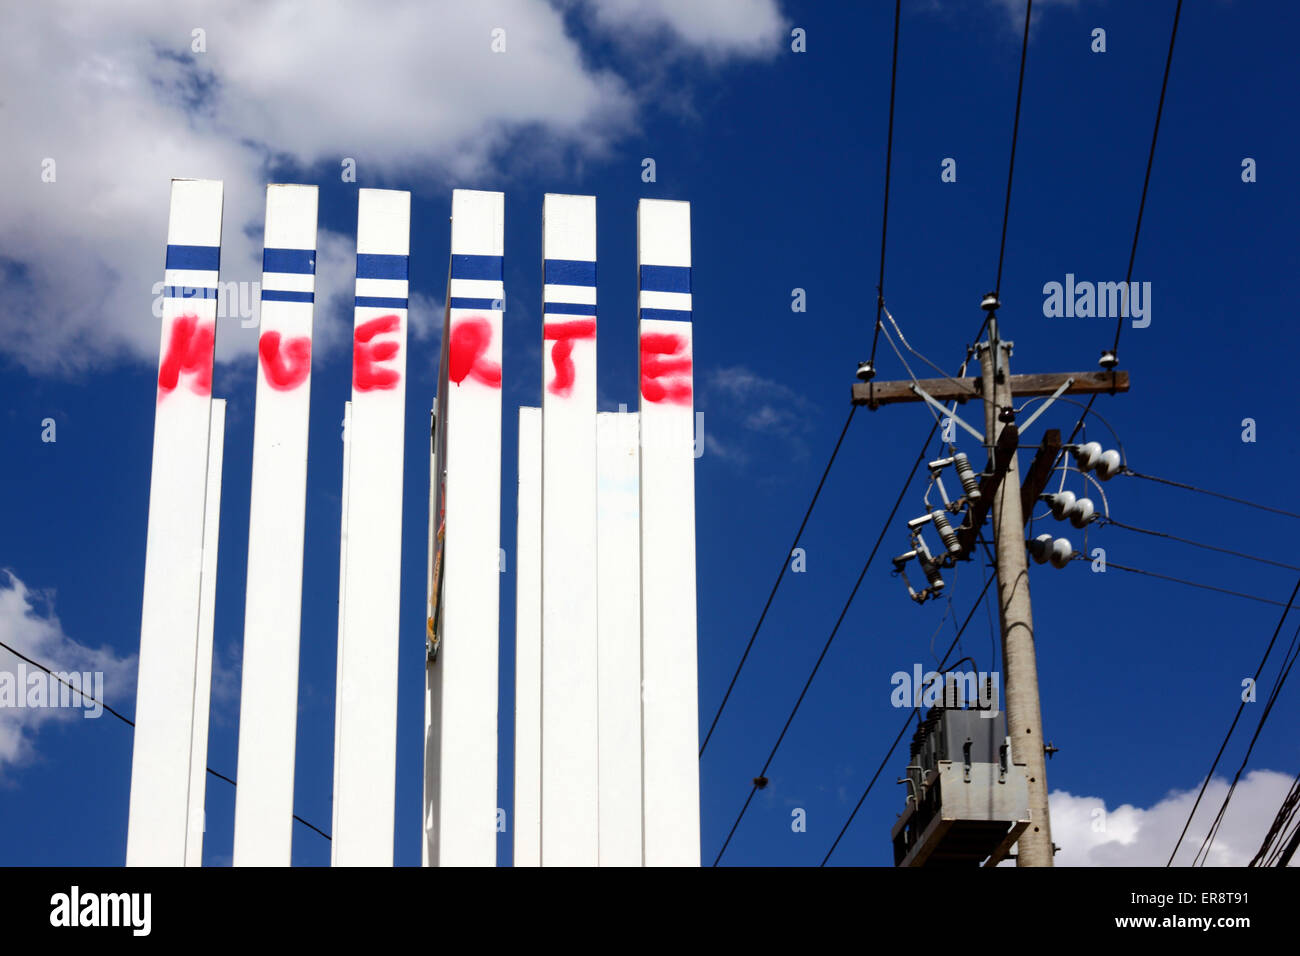 A monument with the Spanish word 'Muerte' ('Death') in protest against the Israeli military offensive - Stock Image